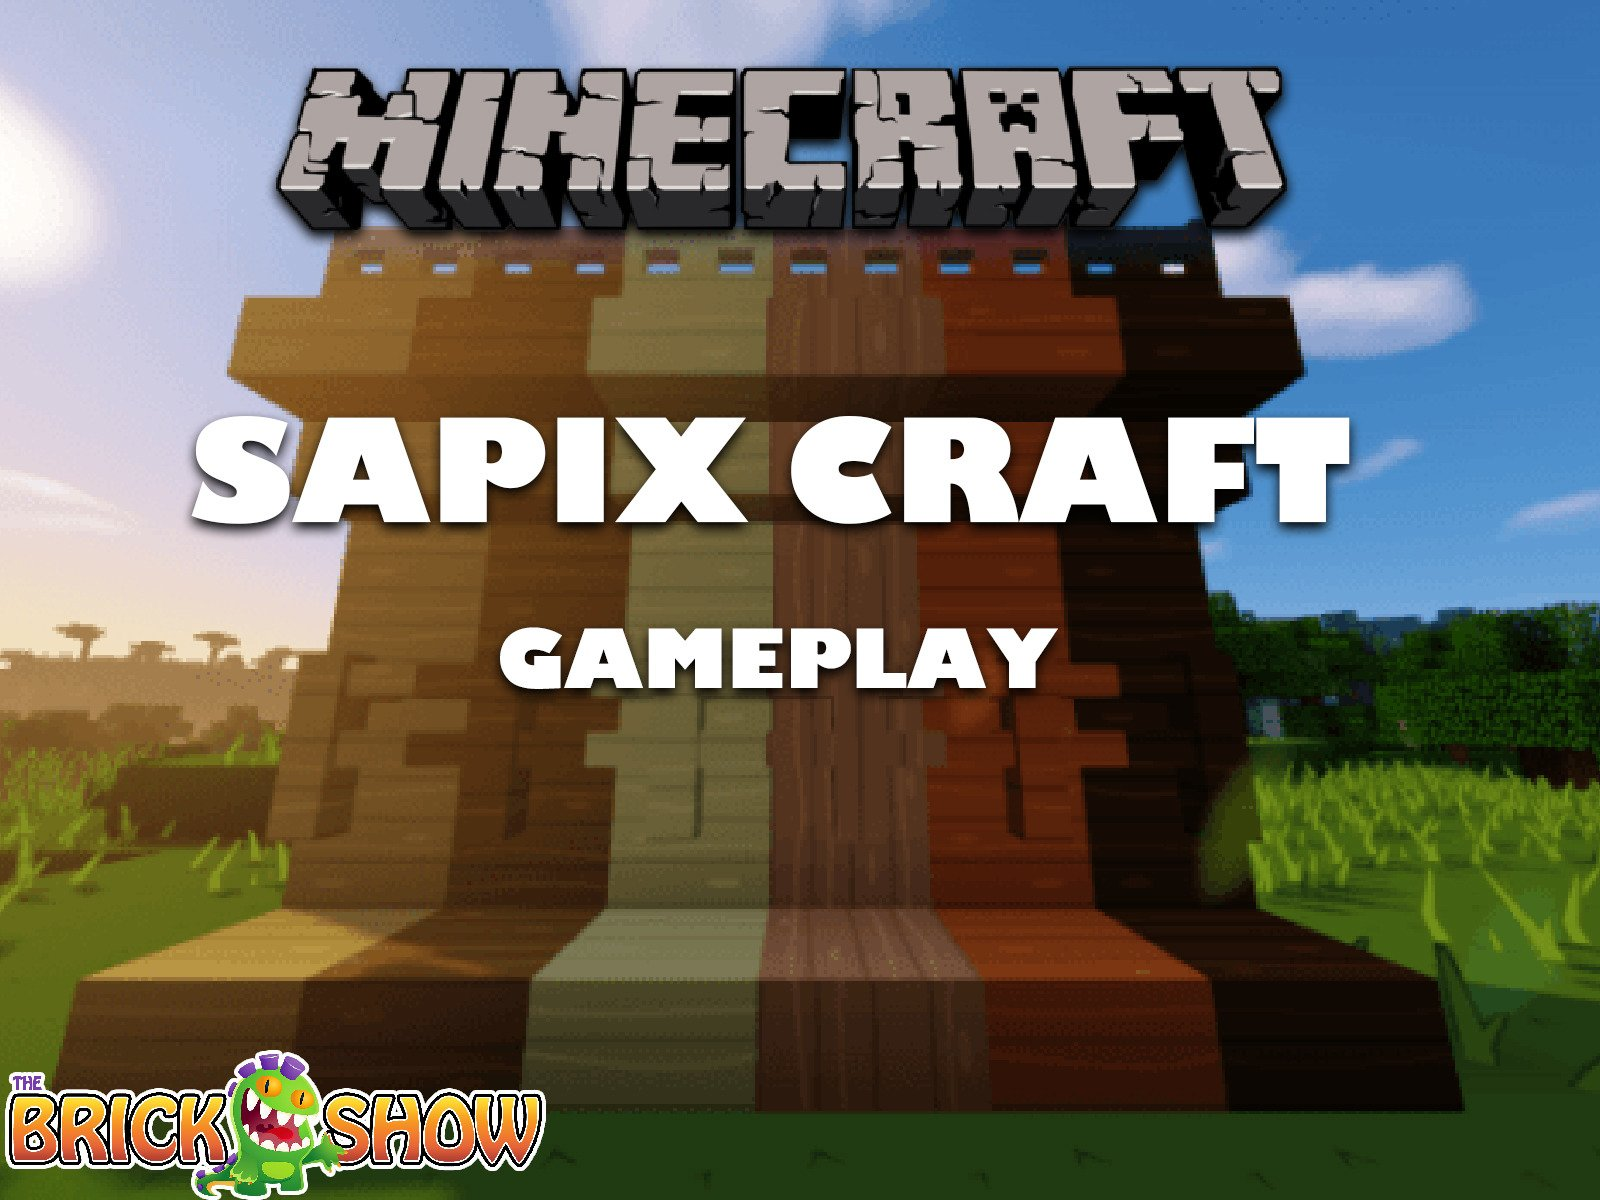 Clip: Minecraft Sapix Craft Gameplay